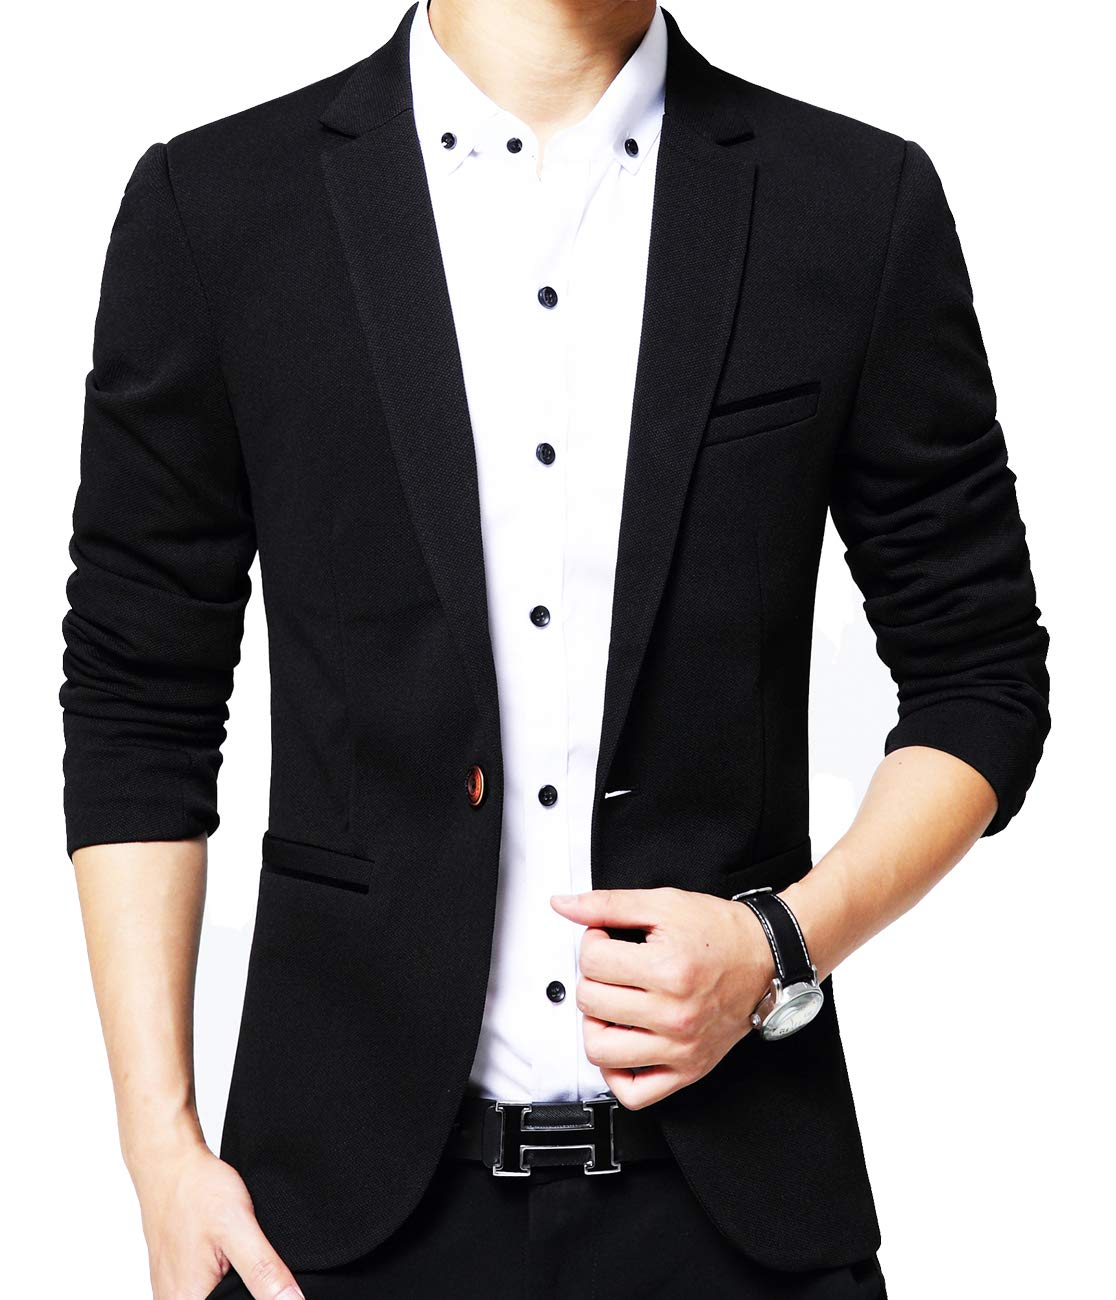 Mens Slim Fit Single One Button Blazer Jackets Black US X-Small/Label X-Large